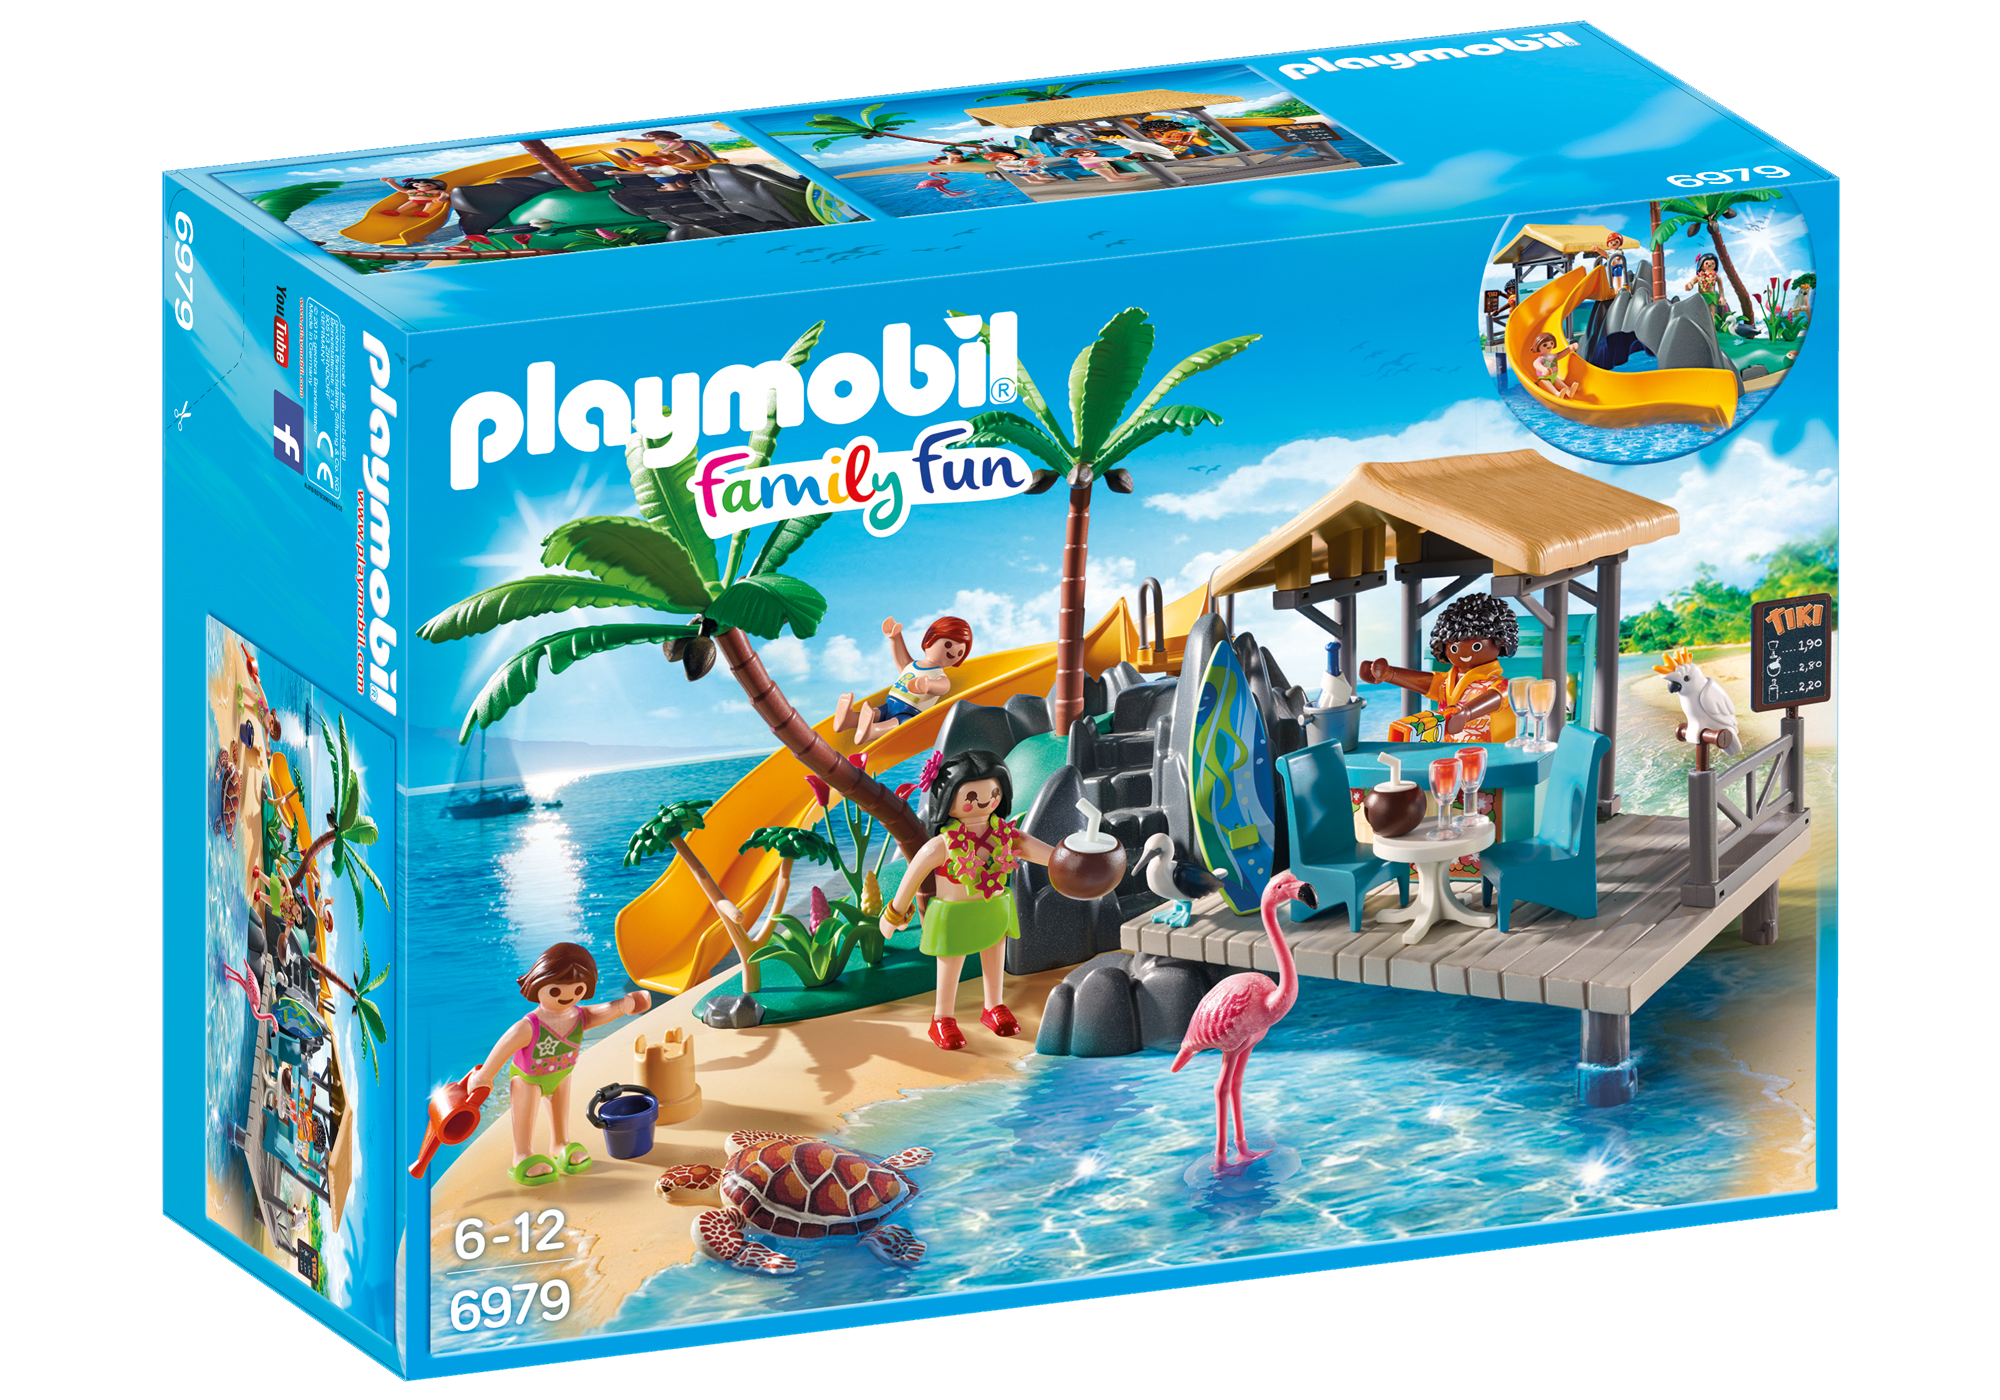 http://media.playmobil.com/i/playmobil/6979_product_box_front